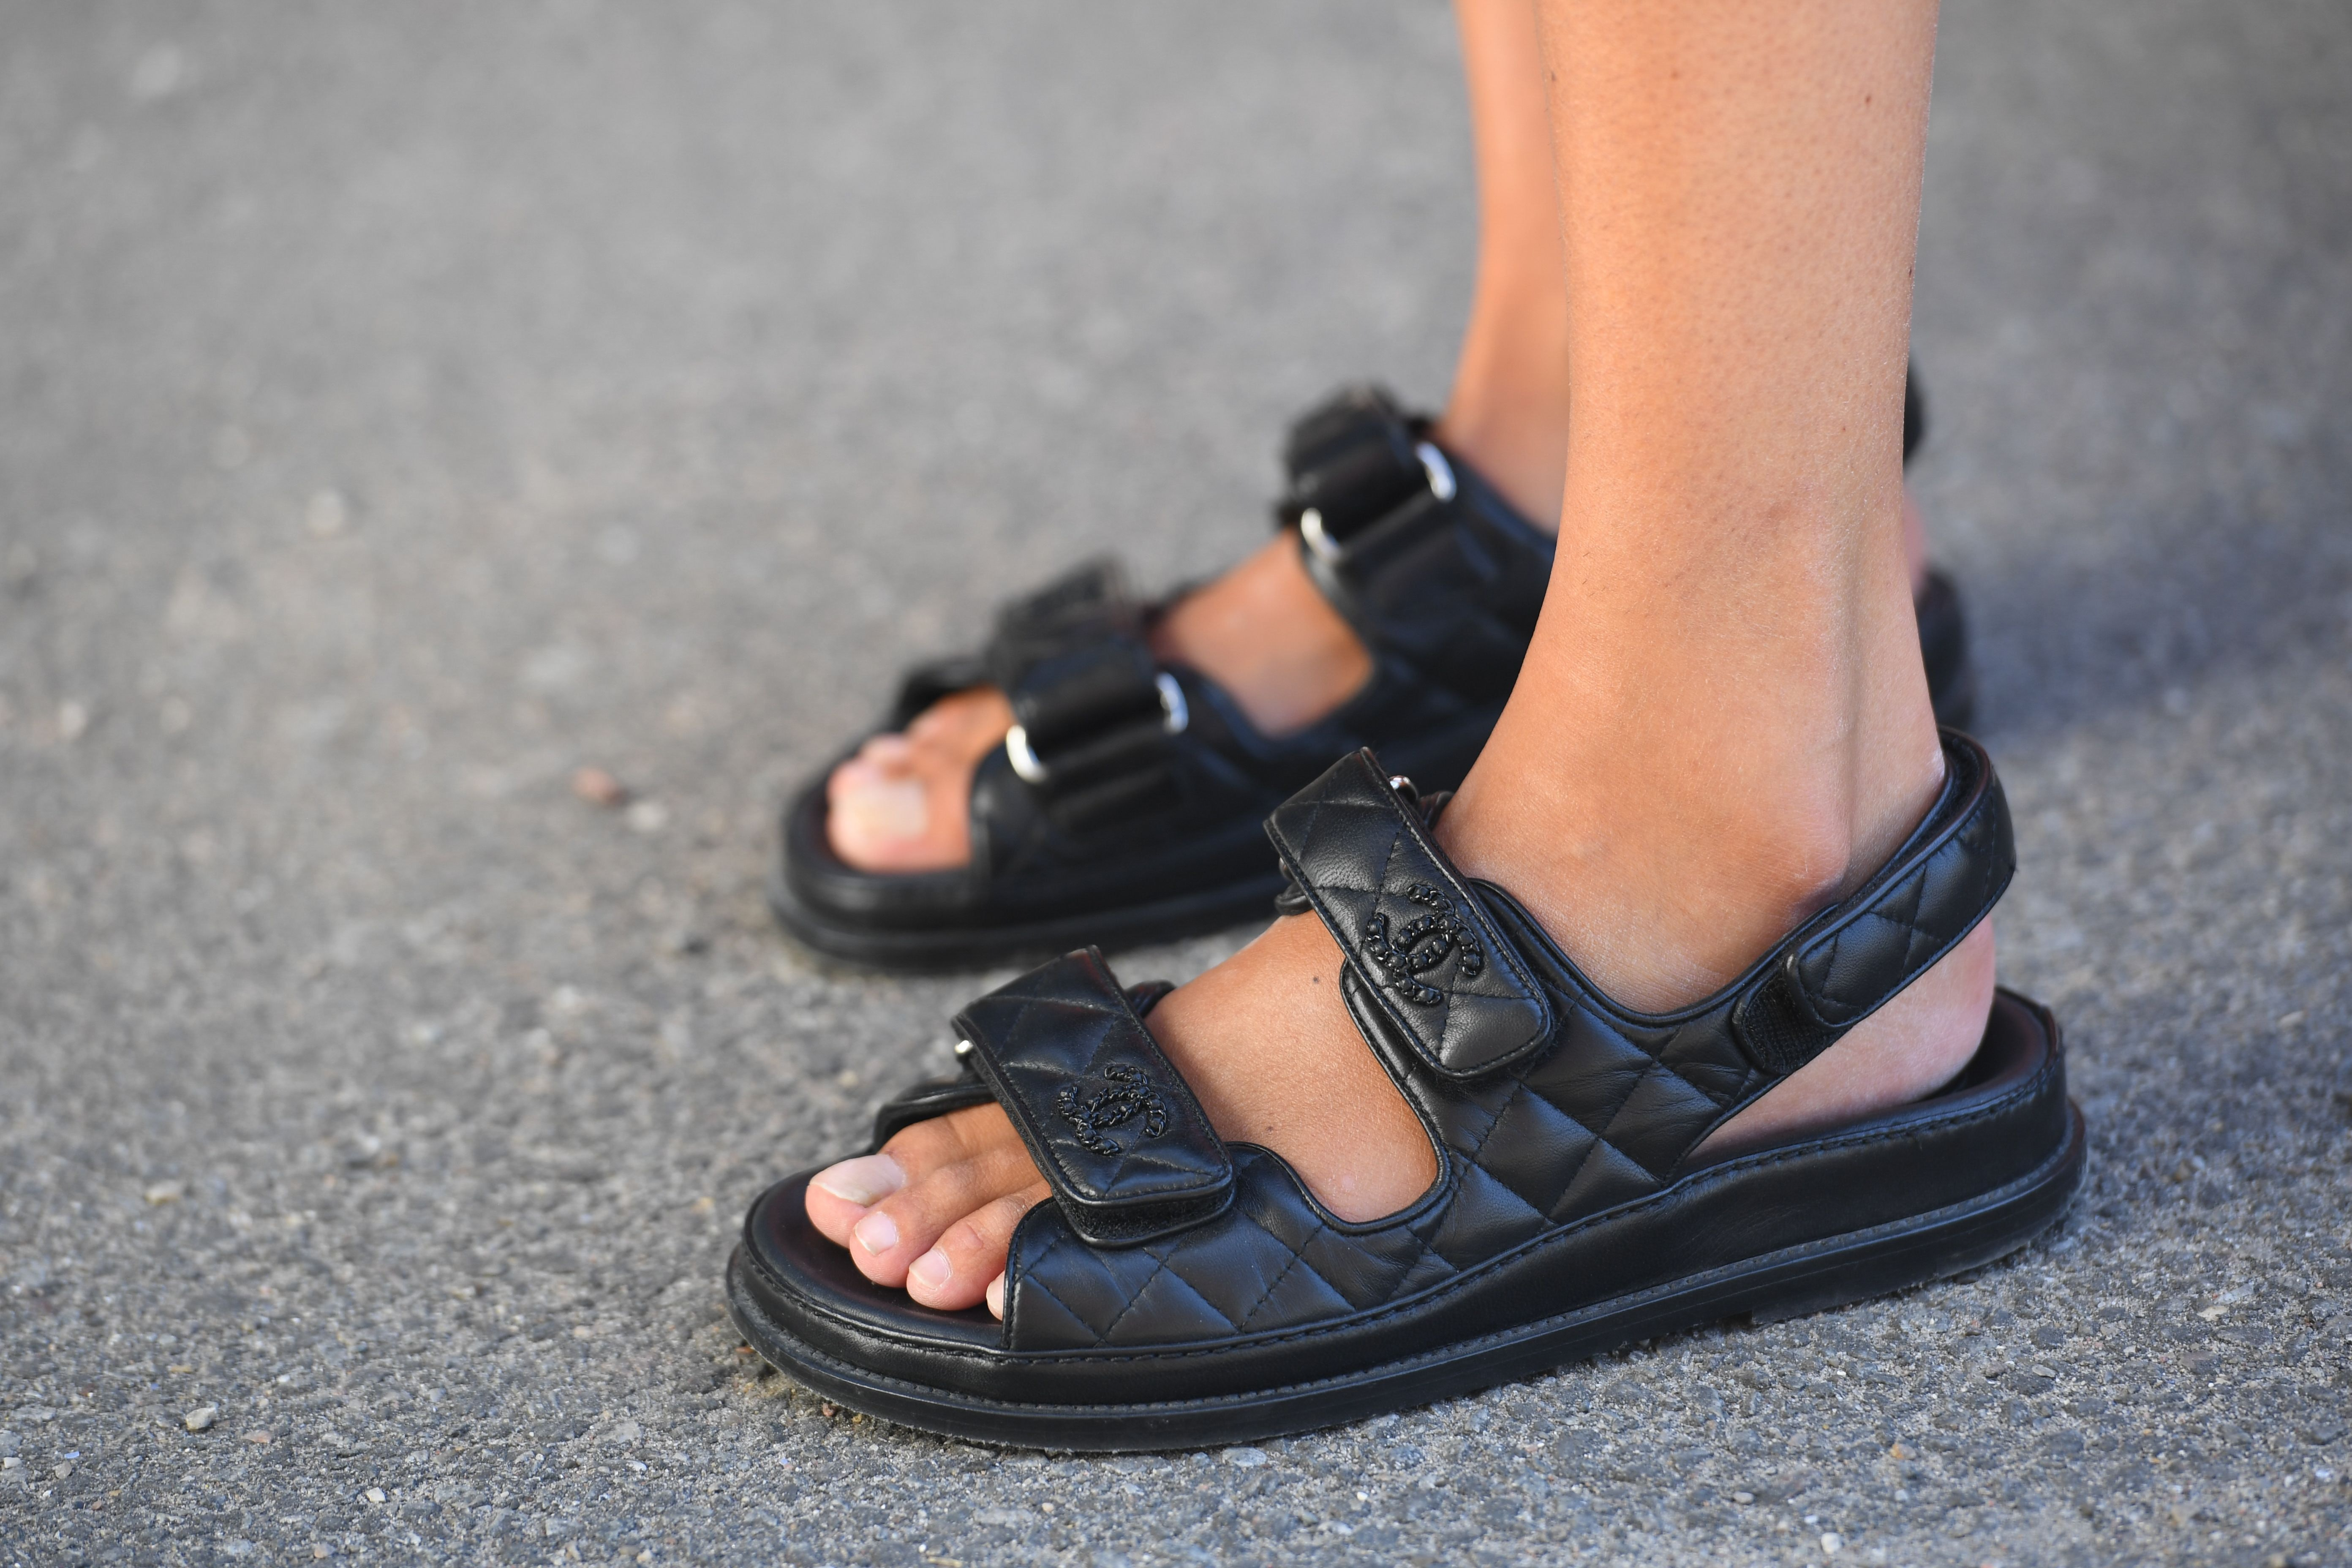 The 2019 Sandal Trend You're About To